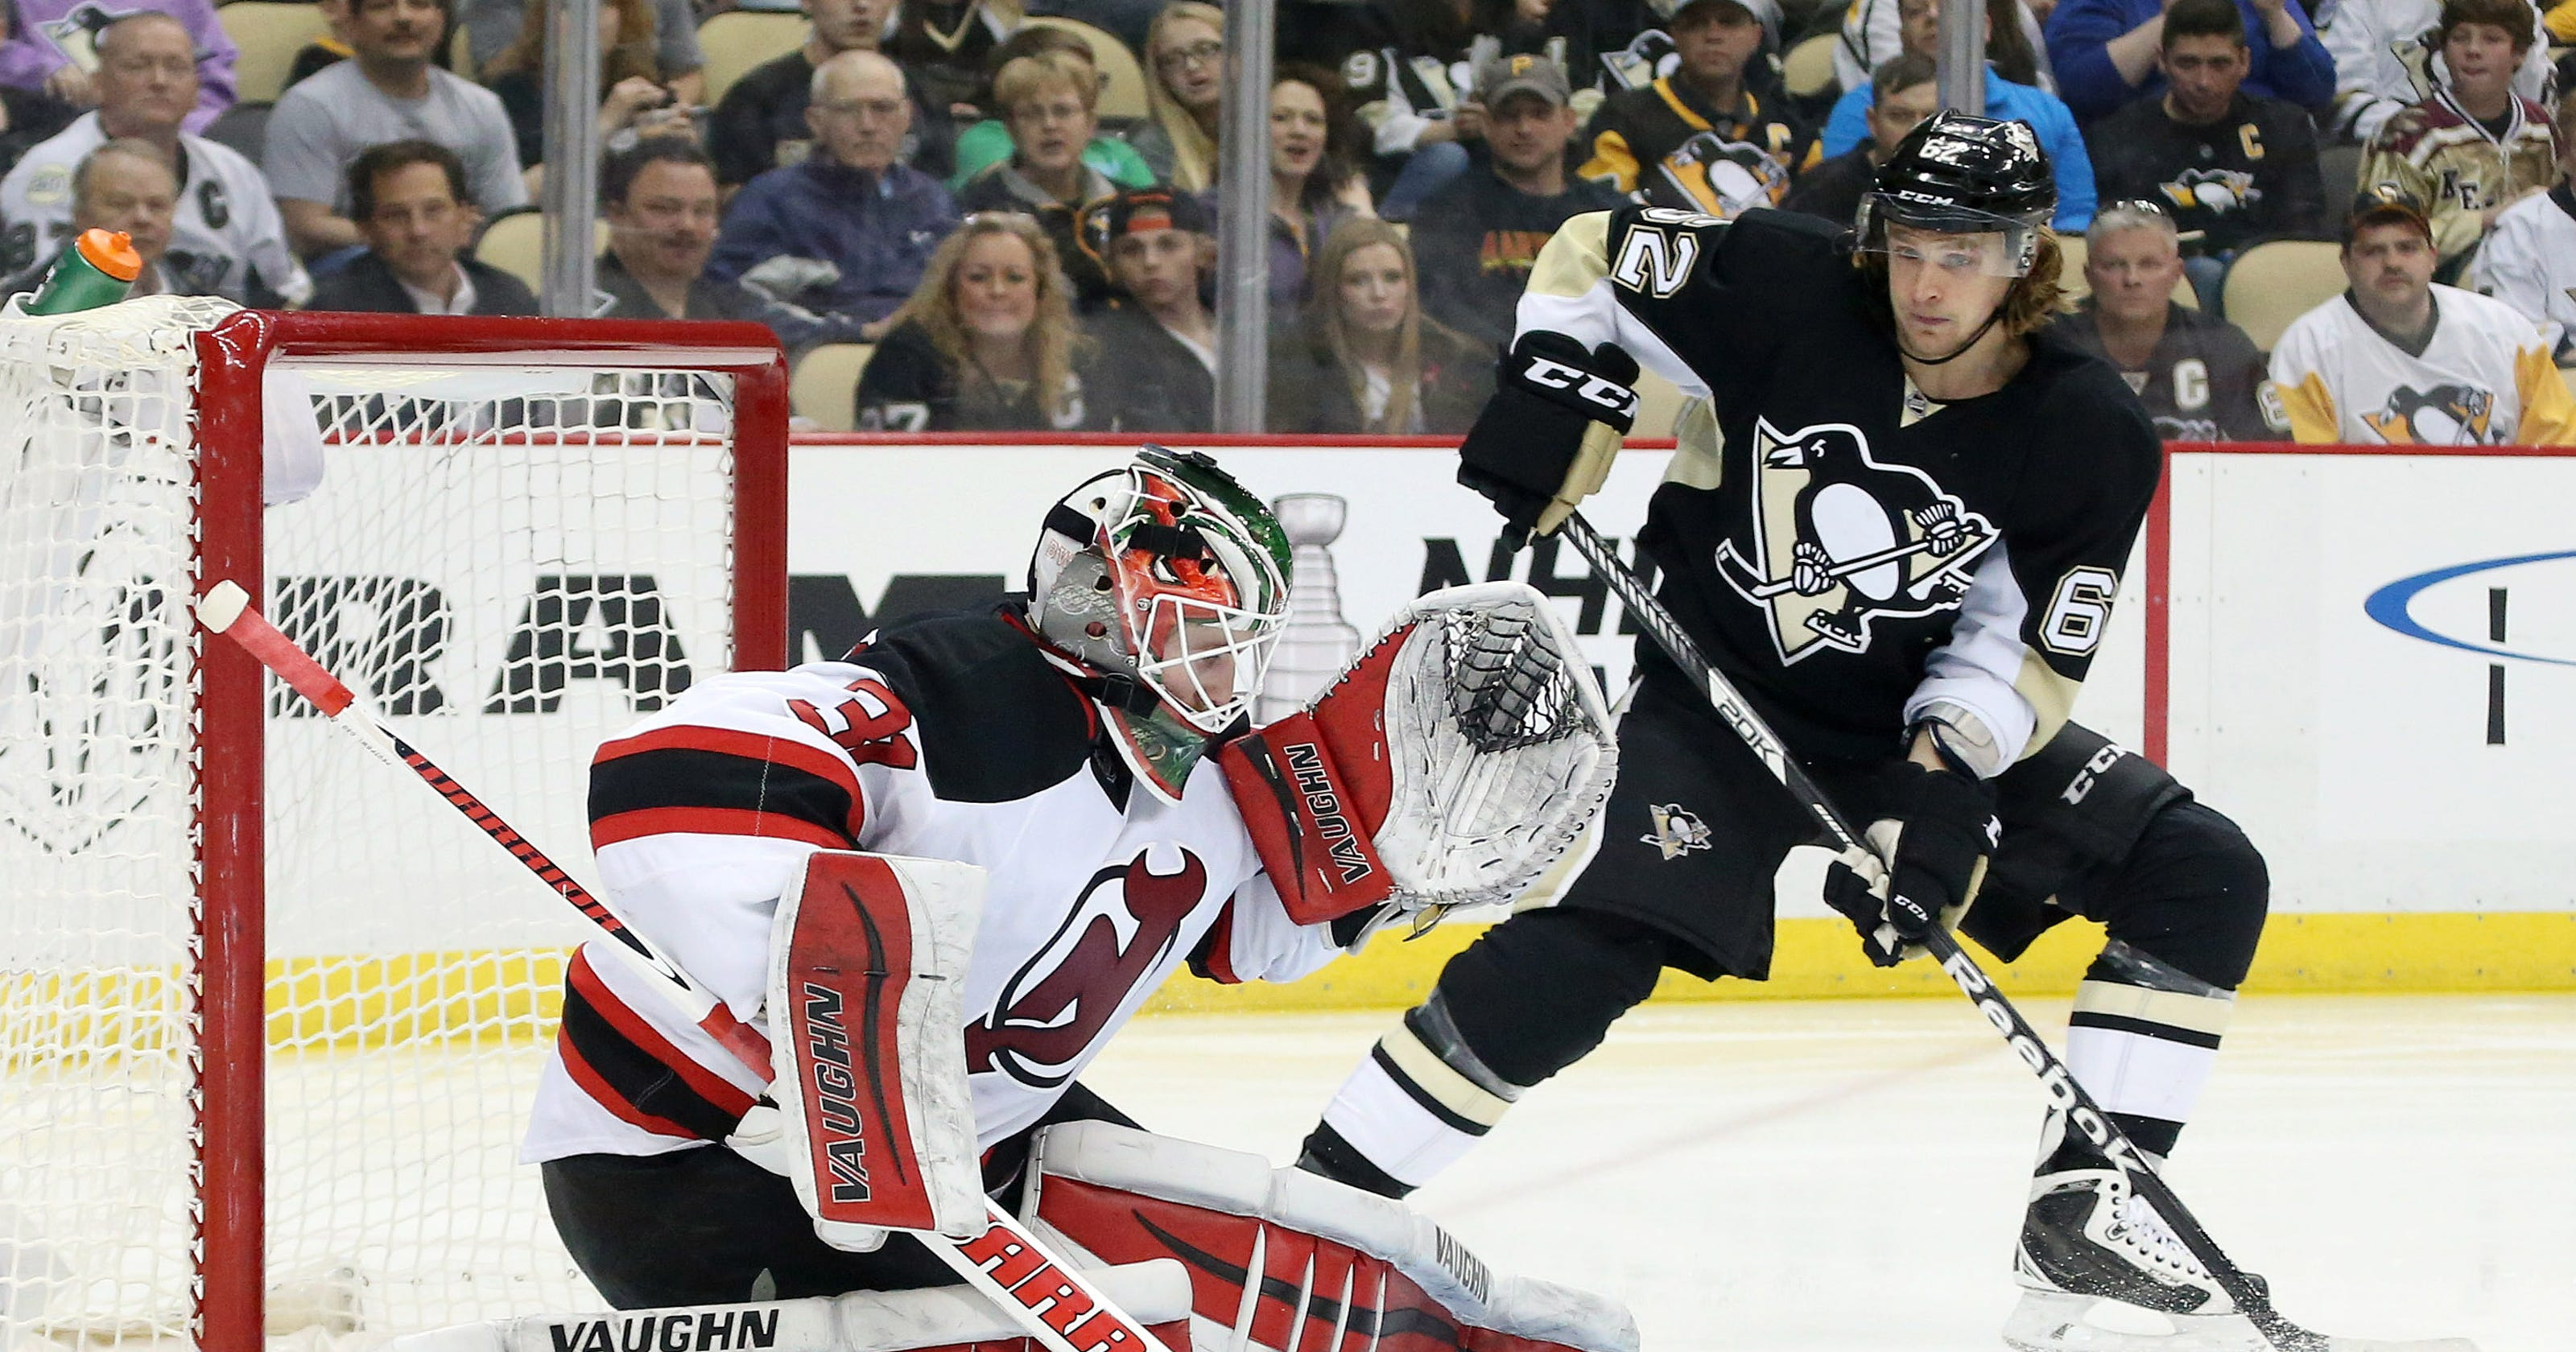 bcde5c3f953 Penguins win-streak snapped by Devils' Scott Wedgewood's first shutout